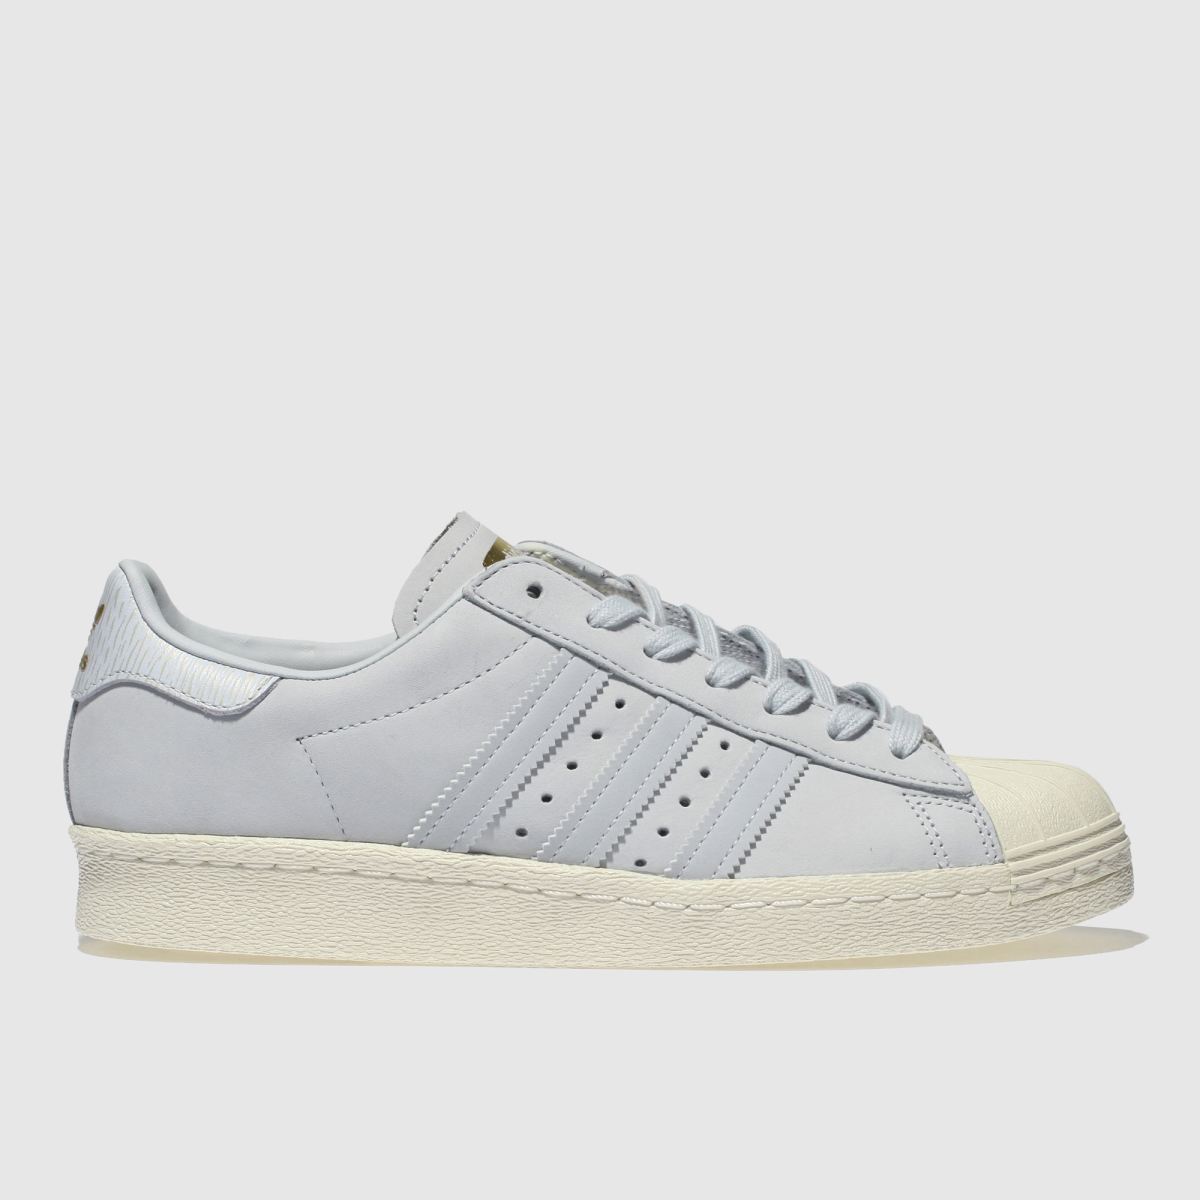 Adidas Pale Blue Superstar Trainers